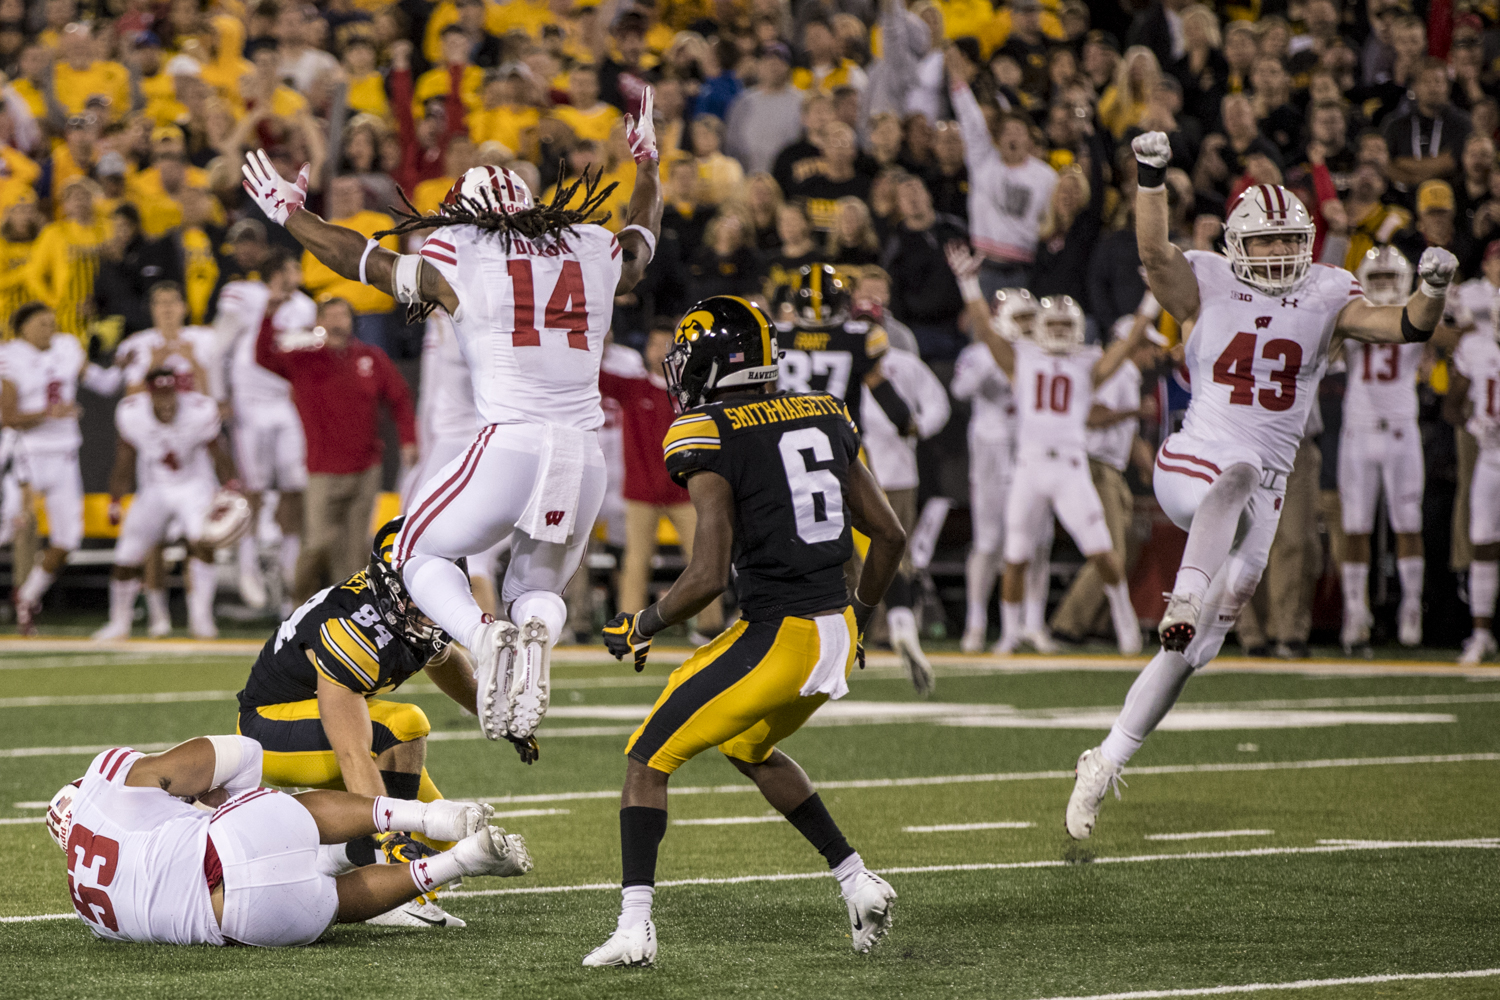 Wisconsin+Players+celebrate+after+a+fourth+quarter+interception+during+Iowa%27s+game+against+Wisconsin+at+Kinnick+Stadium+on+Saturday%2C+September+22%2C+2018.+The+Badgers+defeated+the+Hawkeyes+28-17.